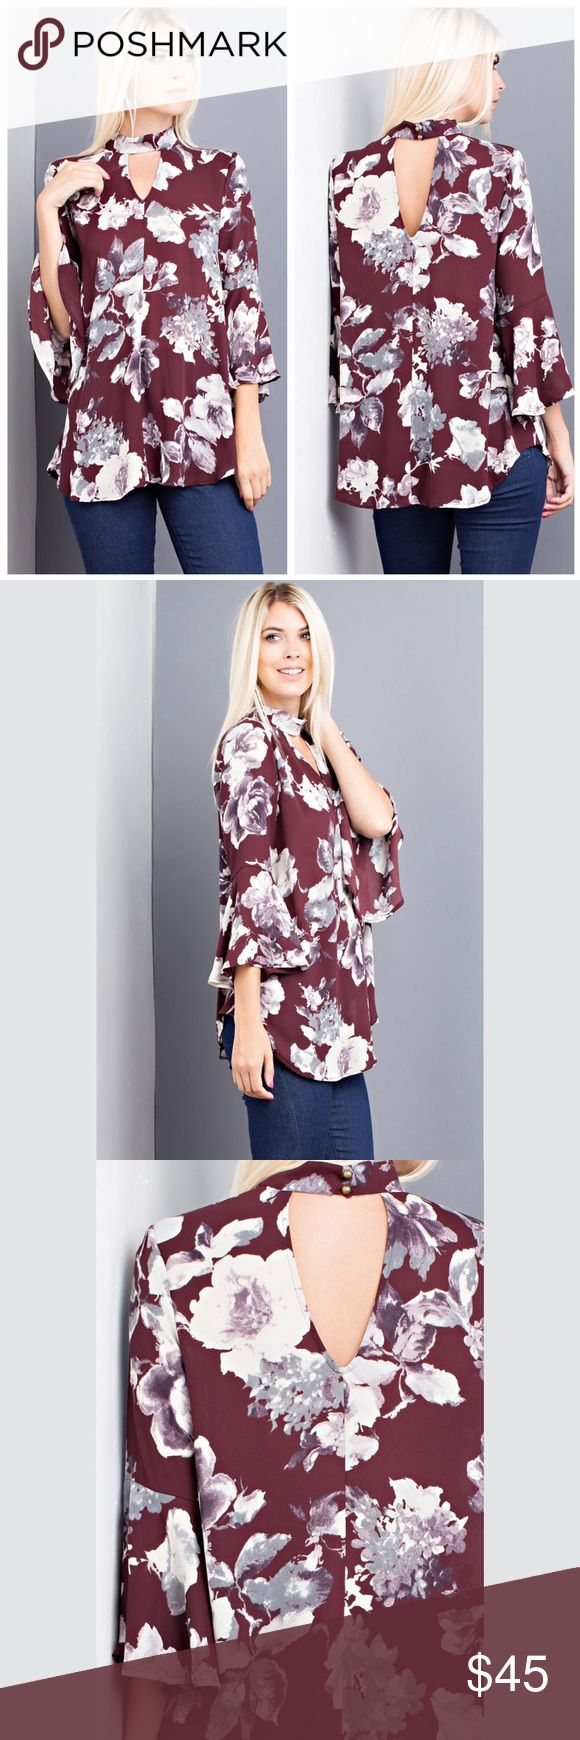 "Ella 🔸 Floral Flowy Top d e s c r i p t i o n  This gorgeous flowing floral print top is a must have for any fall wardrobe. The bell sleeves and a unique neckline make this top a find for the transition to fall.  c o n t e n t  100% polyester   m e a s u r e m e n t s ✂️  I wear + M > Bust + 38"" > waist + 29.5""  p a i r e  w i t h 🌙  + light/white jeans + sandals 💵 bundle for a discount VEGA Tops Blouses"